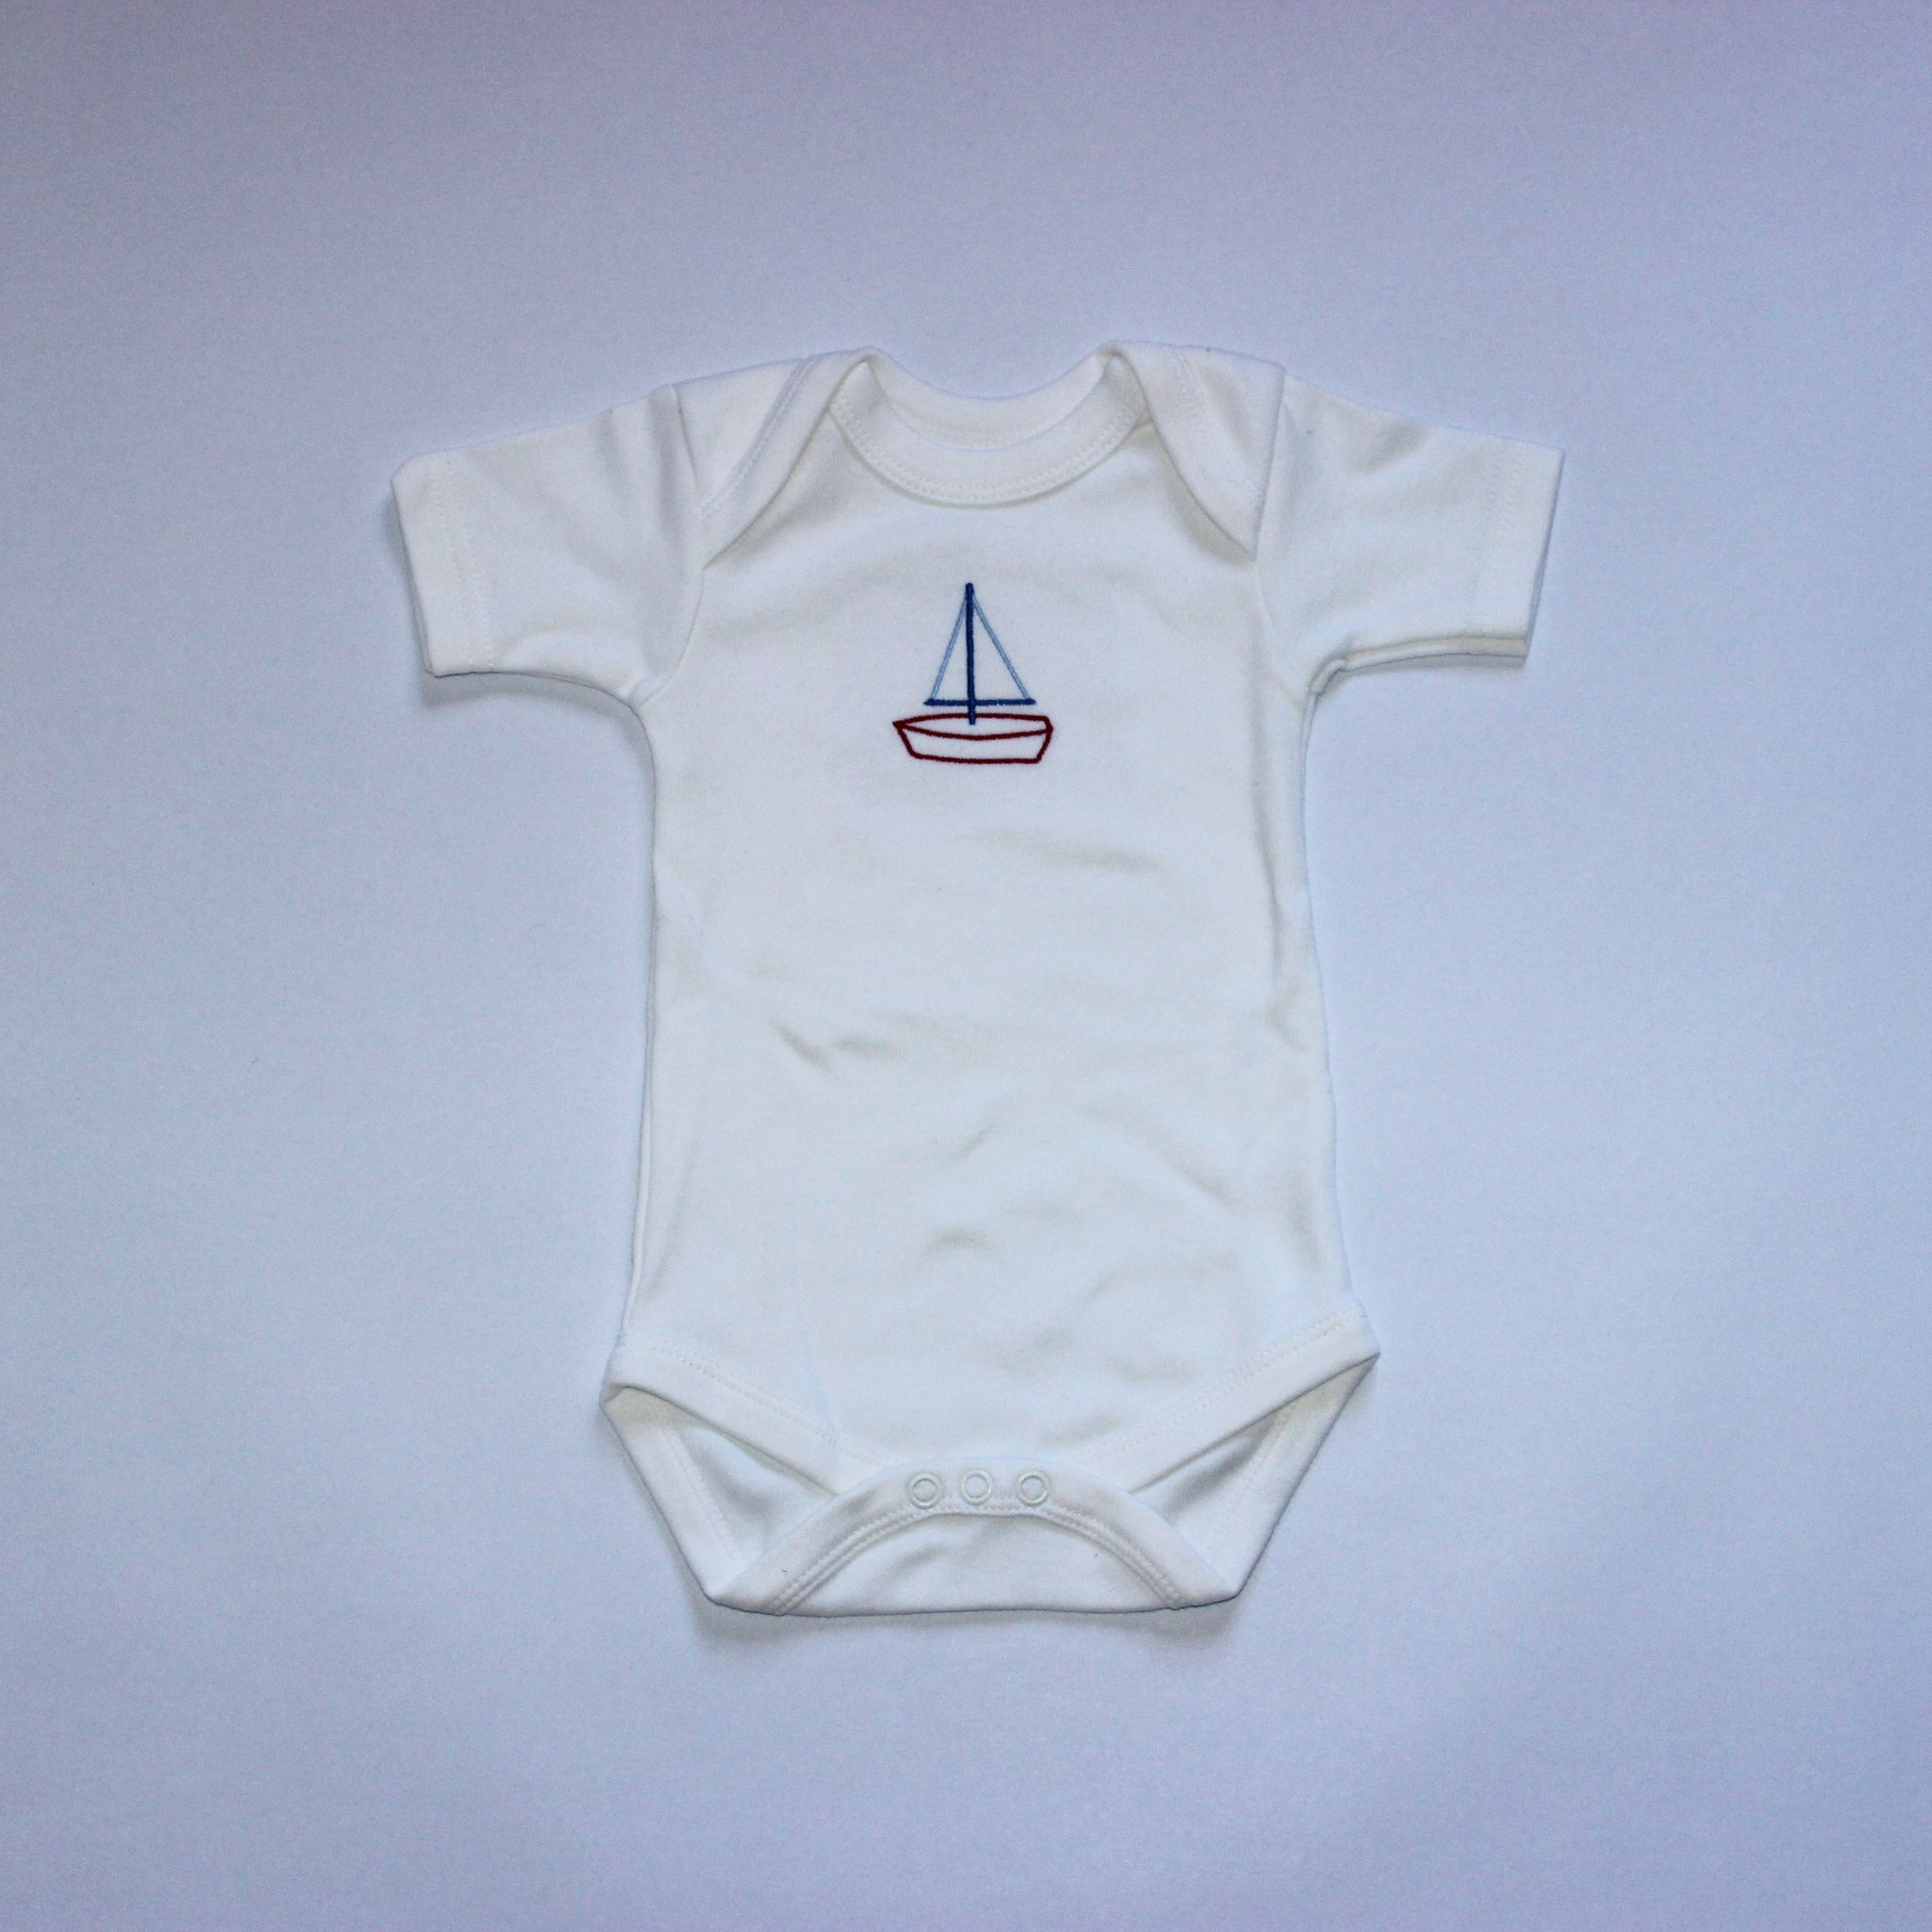 Cotton Baby Body Vests - Sailing Boat